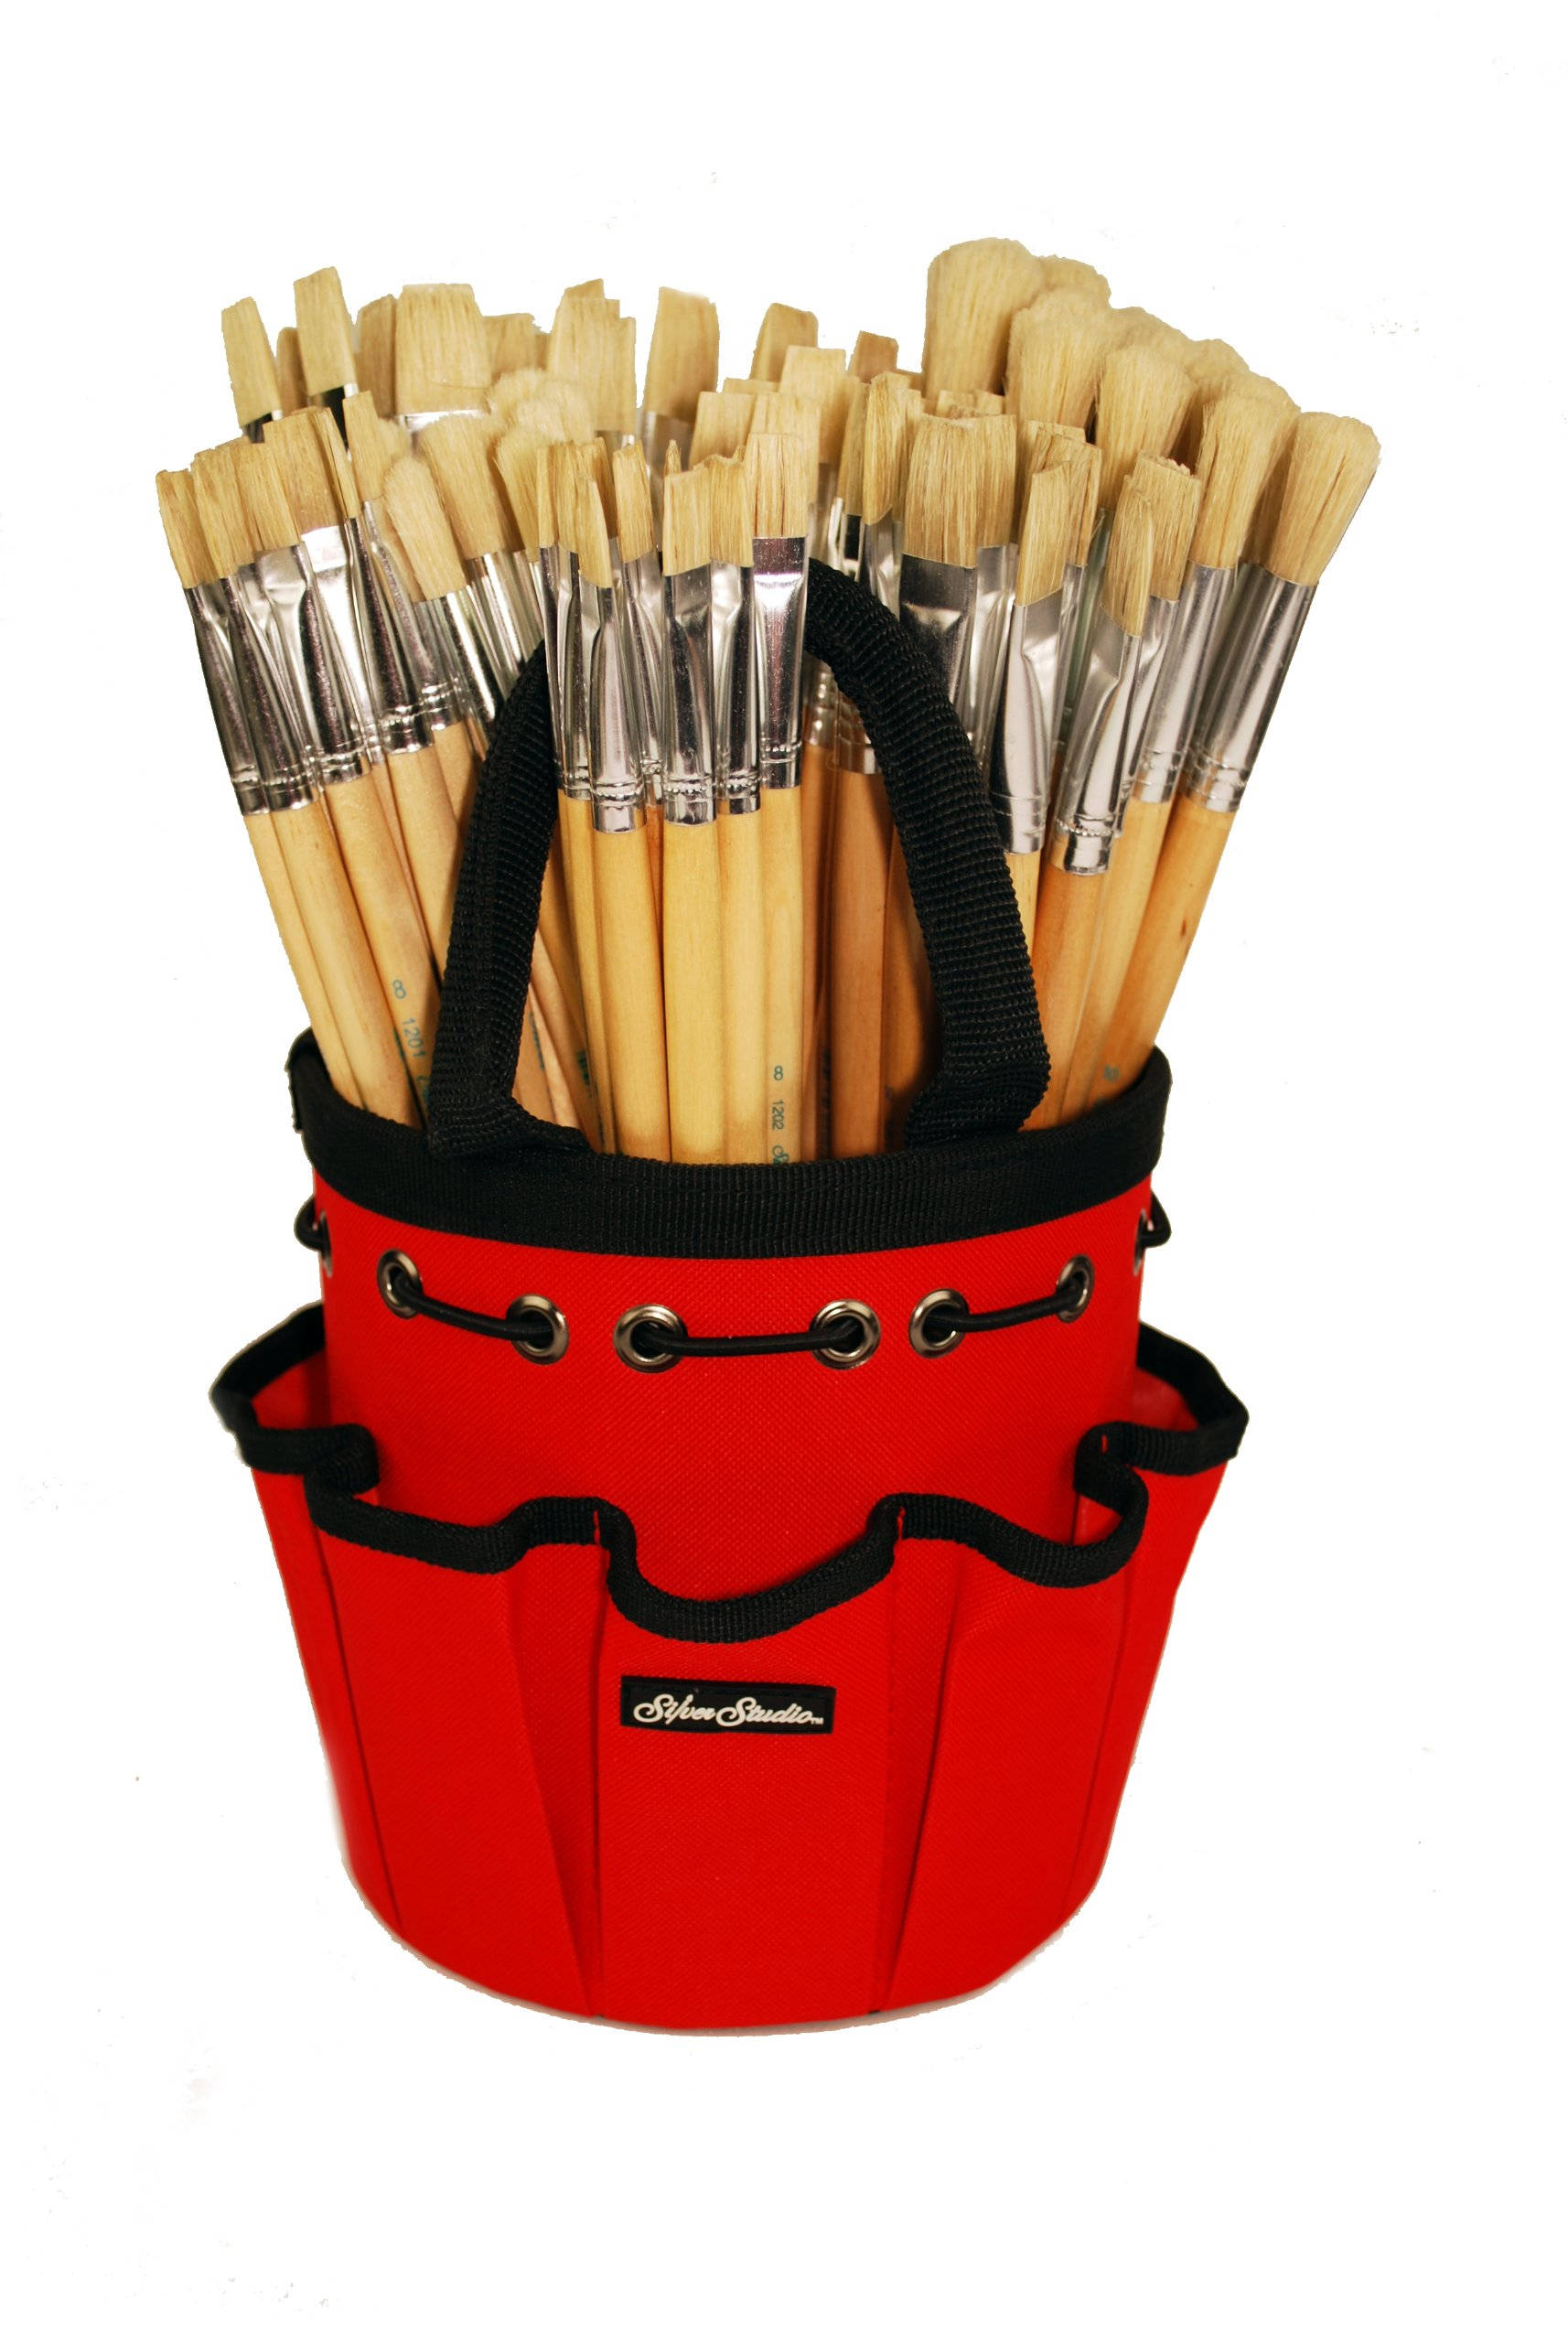 Silverwhite CP-1209 Faye Bristle Jumbo Size Long handle Class Pack Brush Set with Red Petite Round Tote, 109 Per Pack